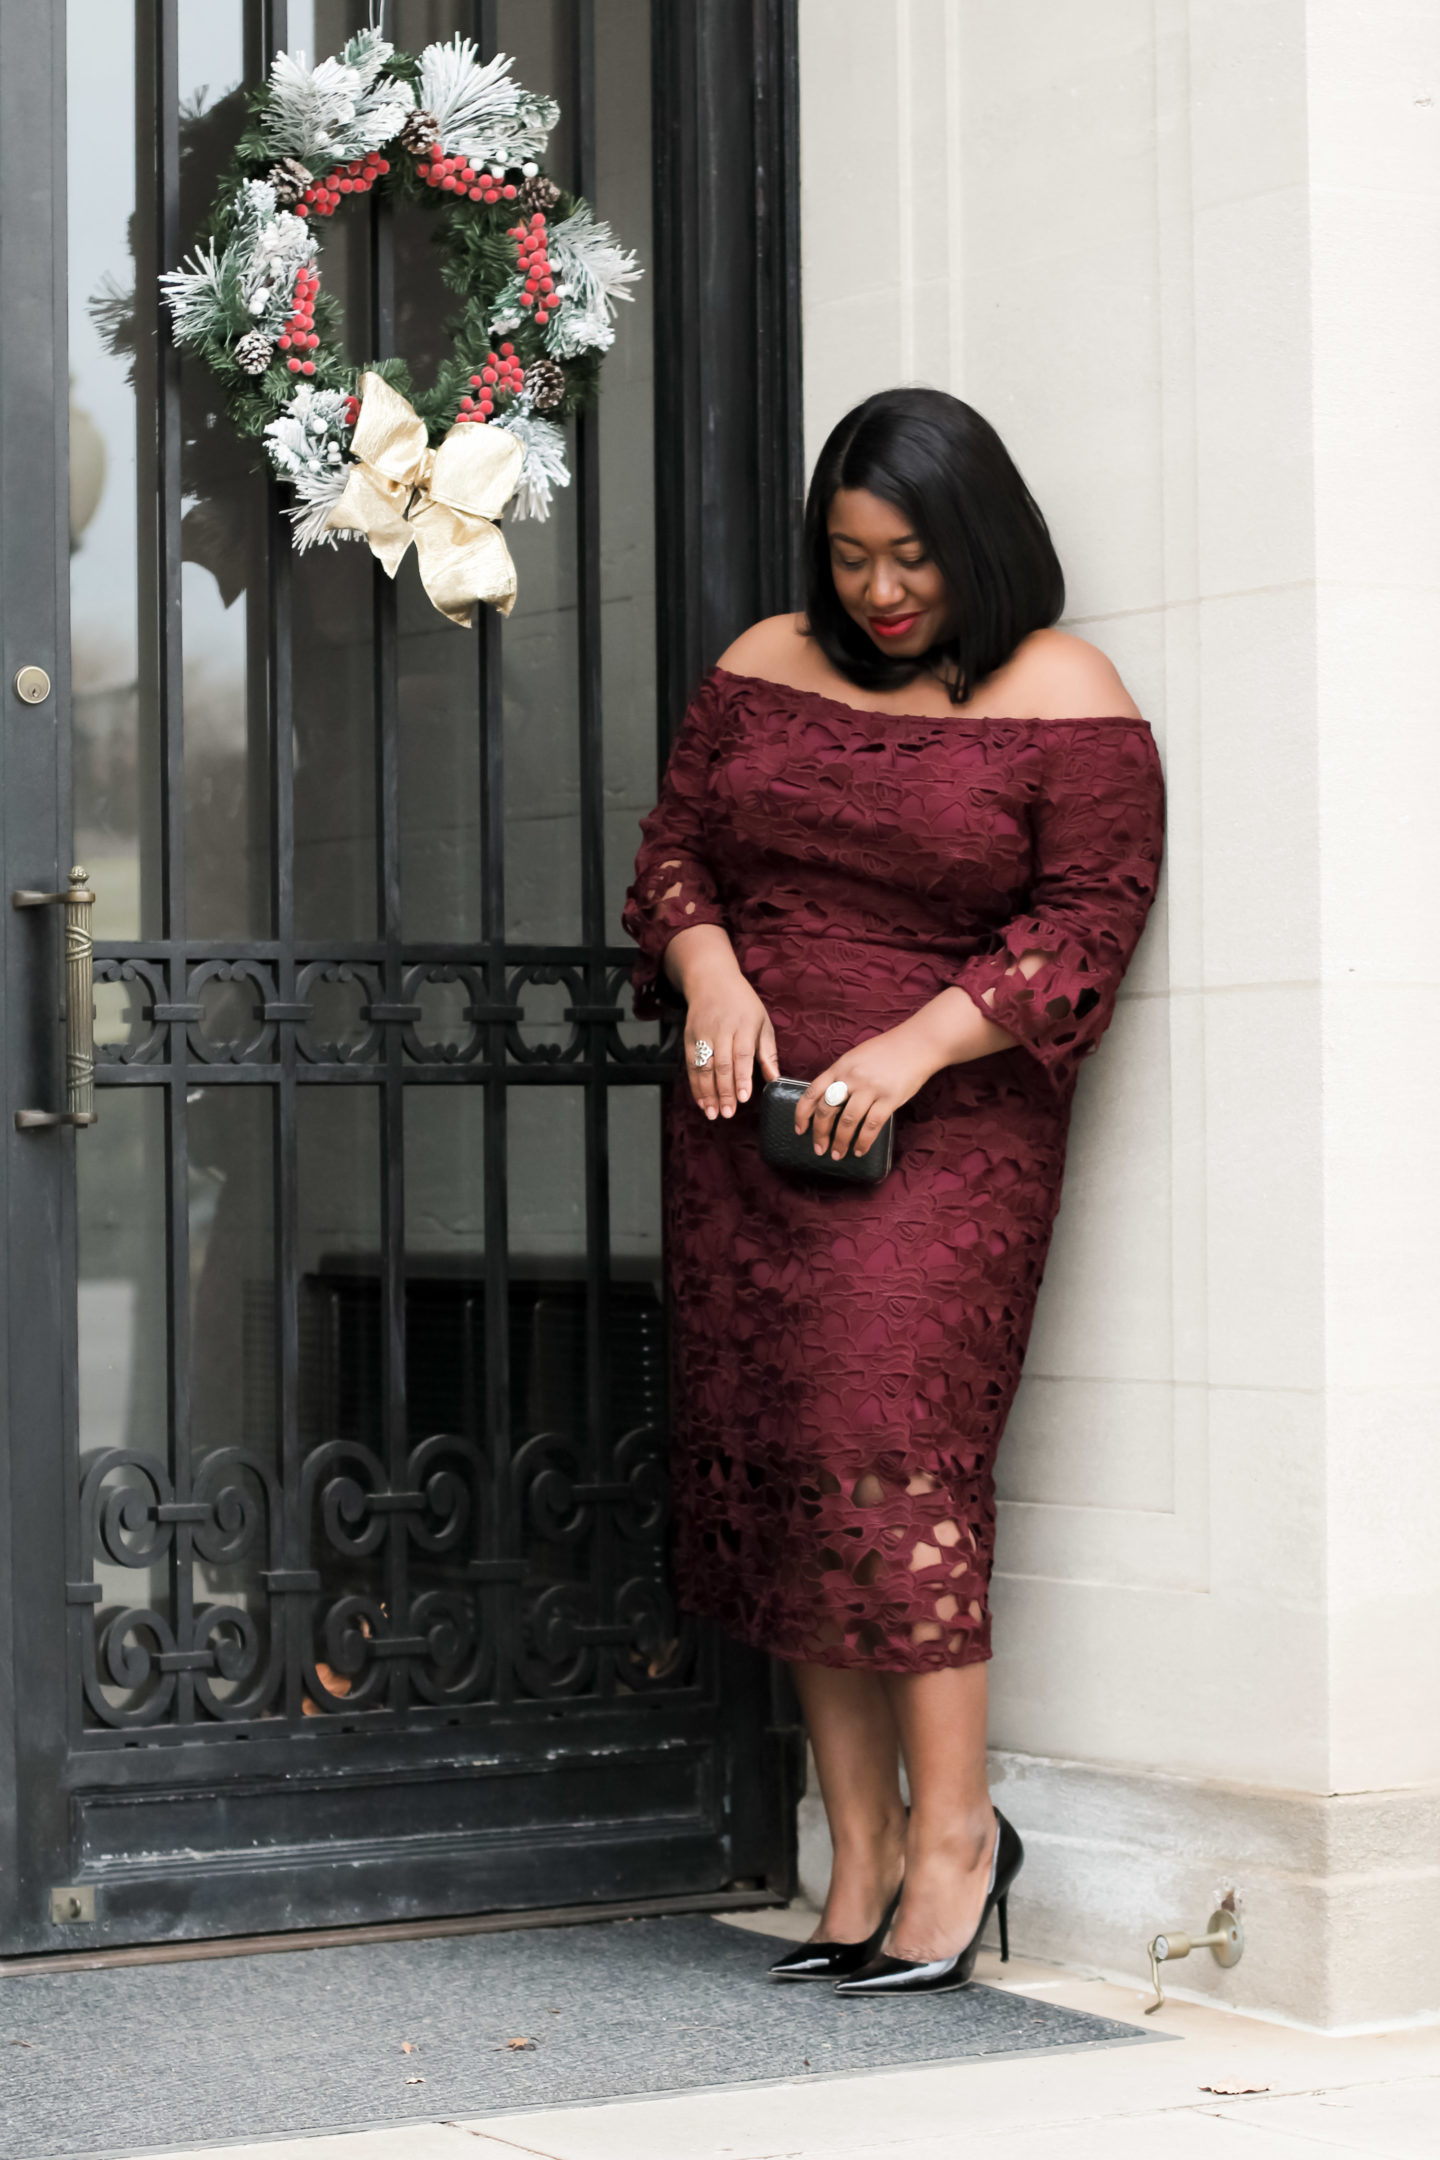 Plus Size Fashion • Plus Size Wine Dress Holiday Outfit • In the Spirit • Shapely Chic Sheri